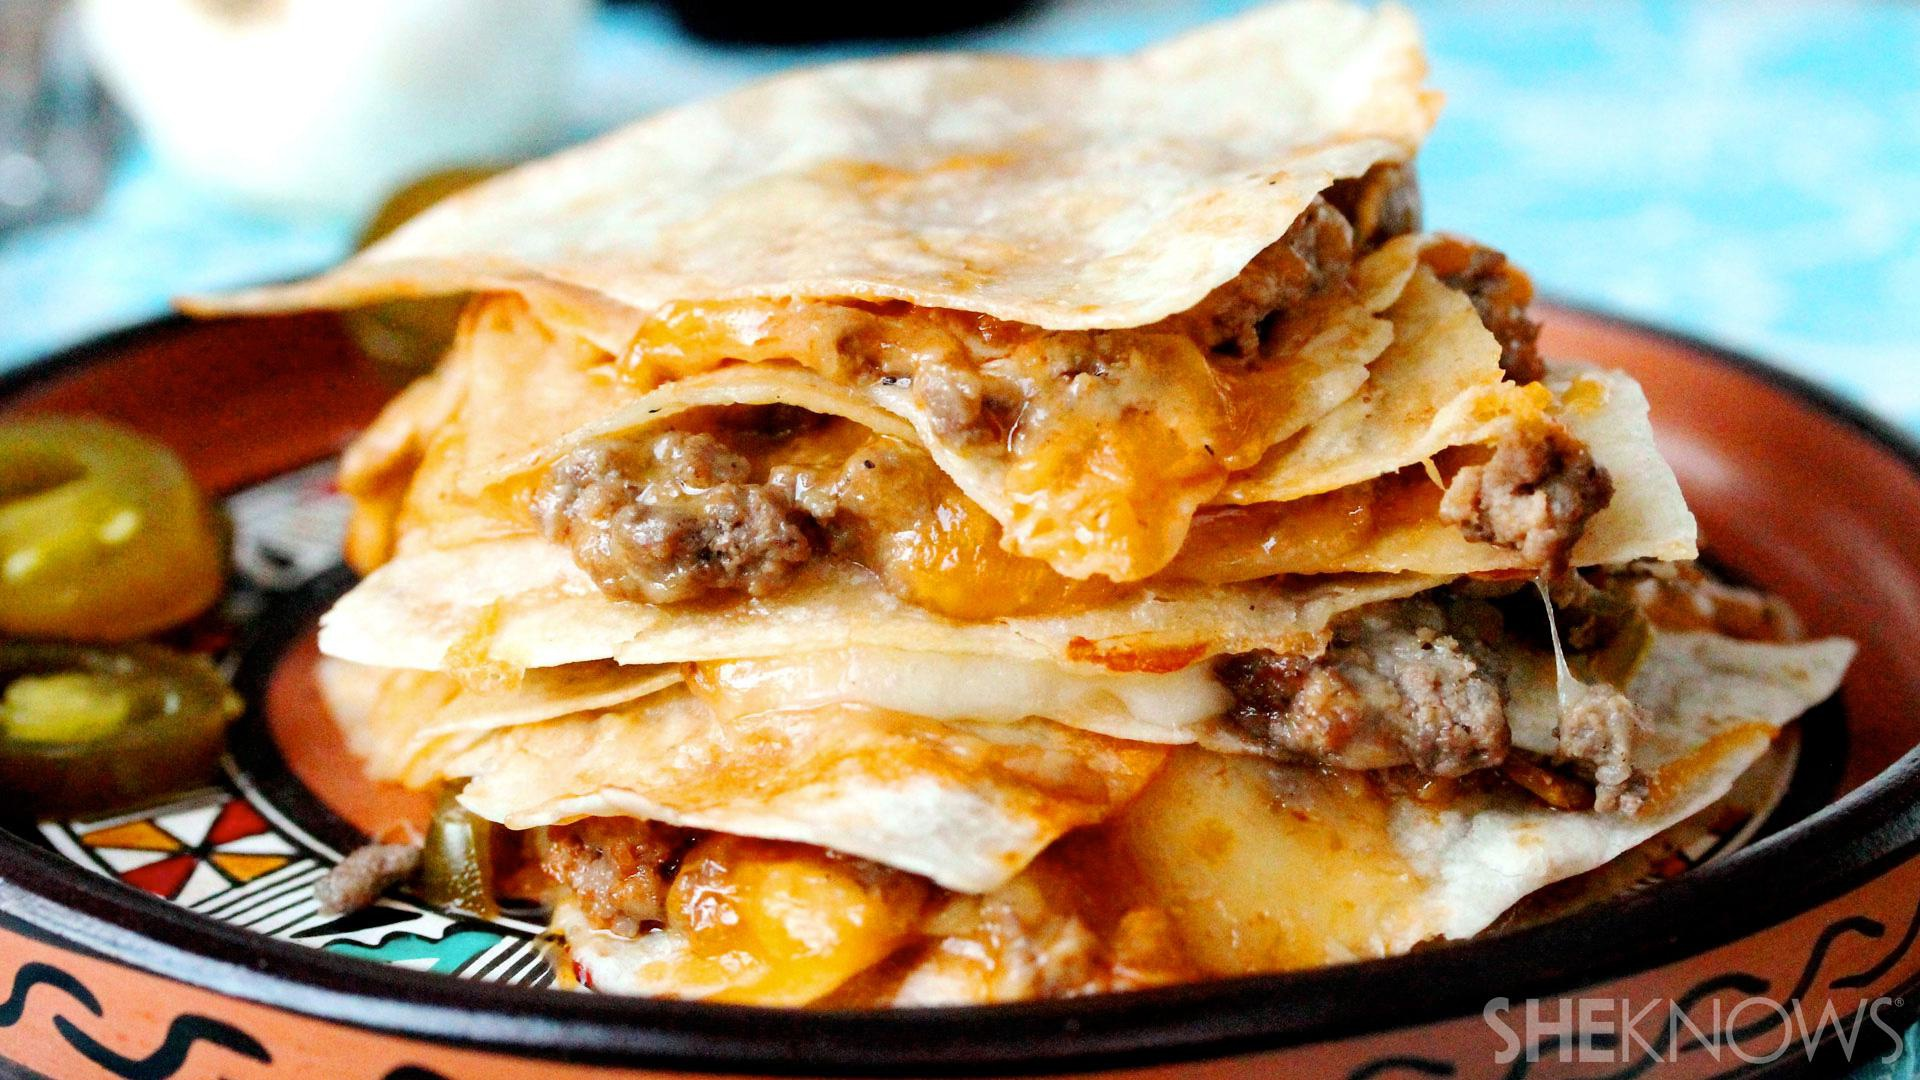 A burger and a quesadilla had a baby, and it will make your mouth water